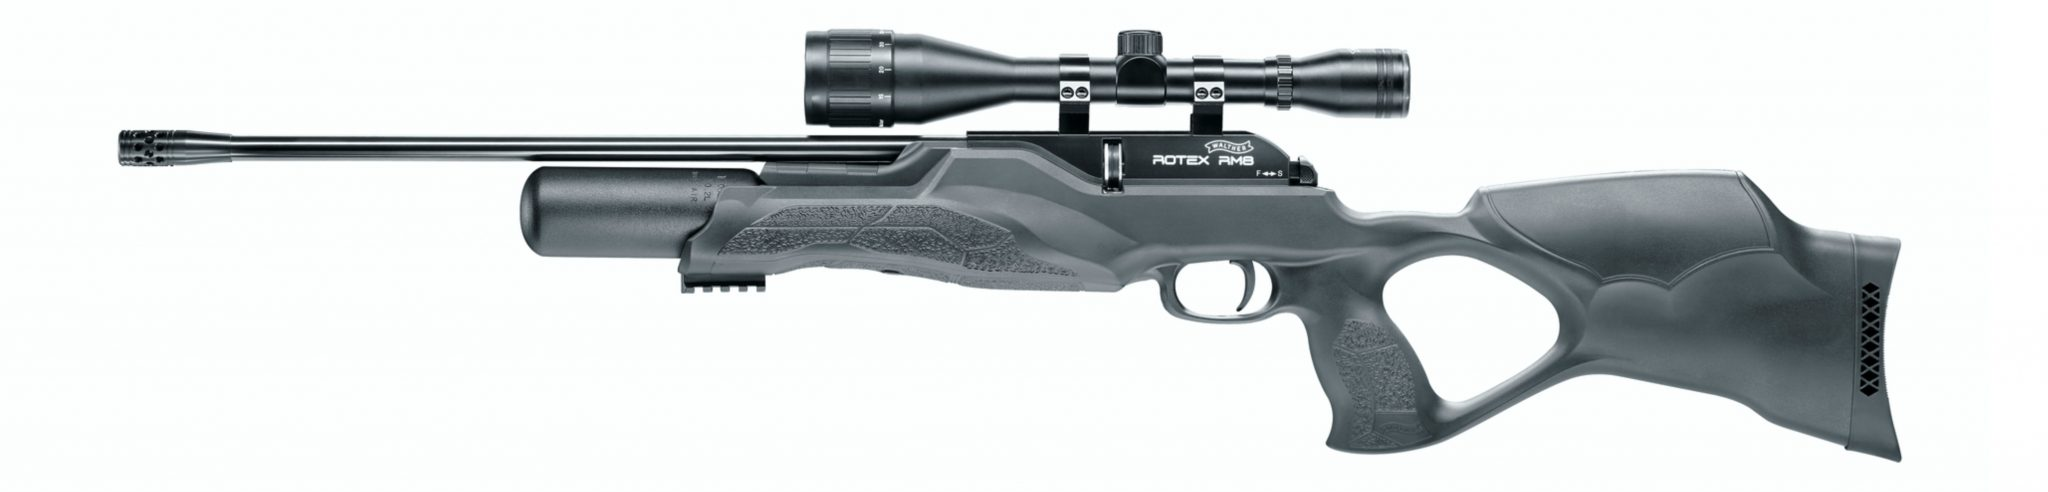 Rotex RM8 Walther